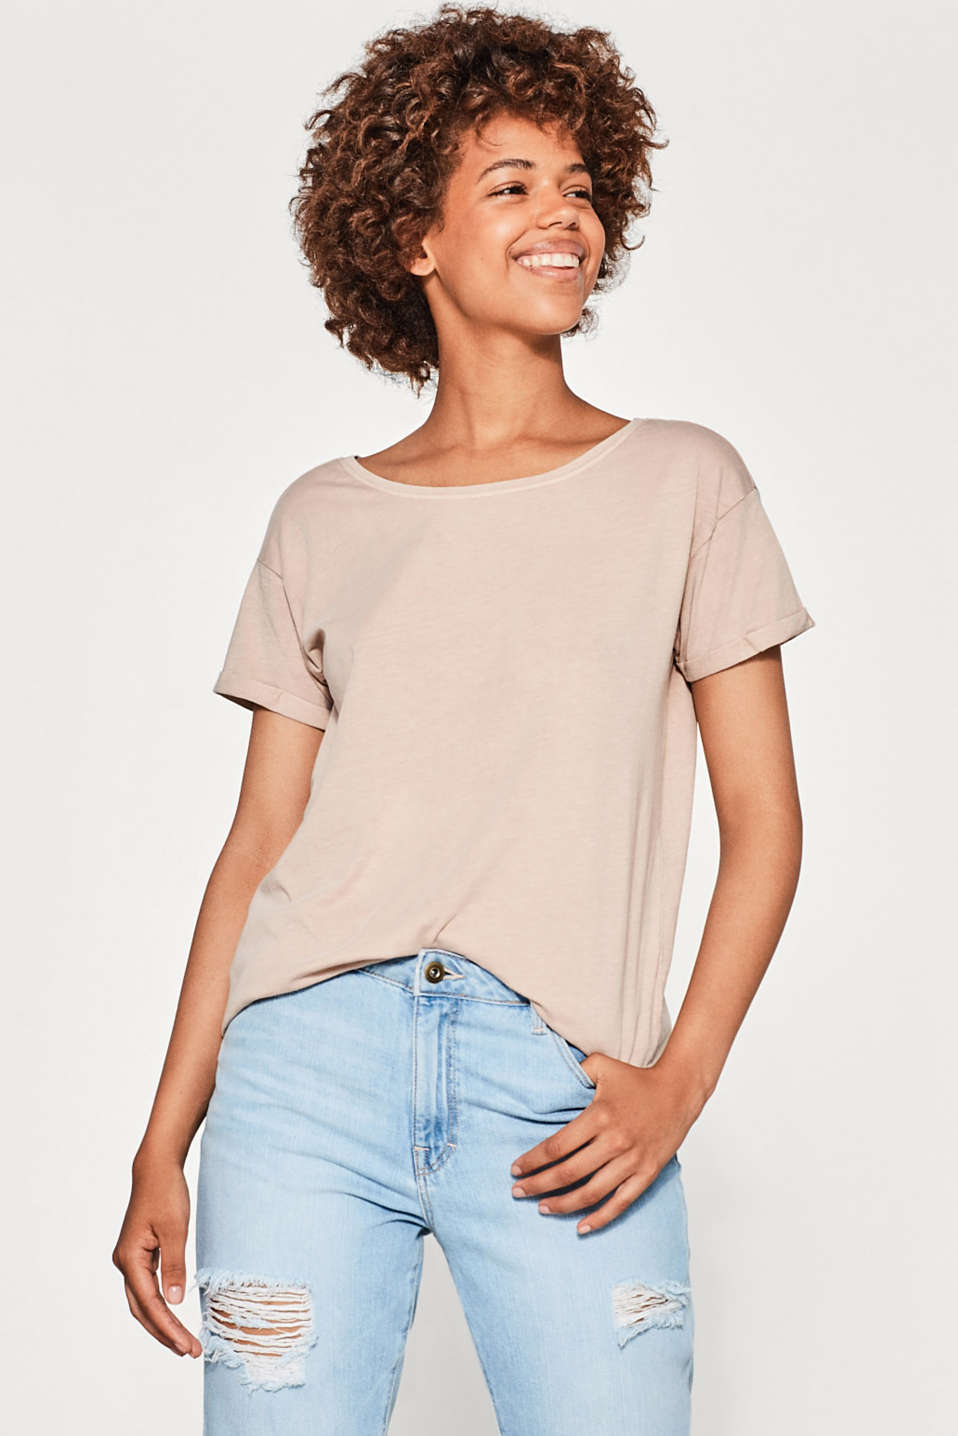 Esprit - Casual T-shirt with scoop back neckline